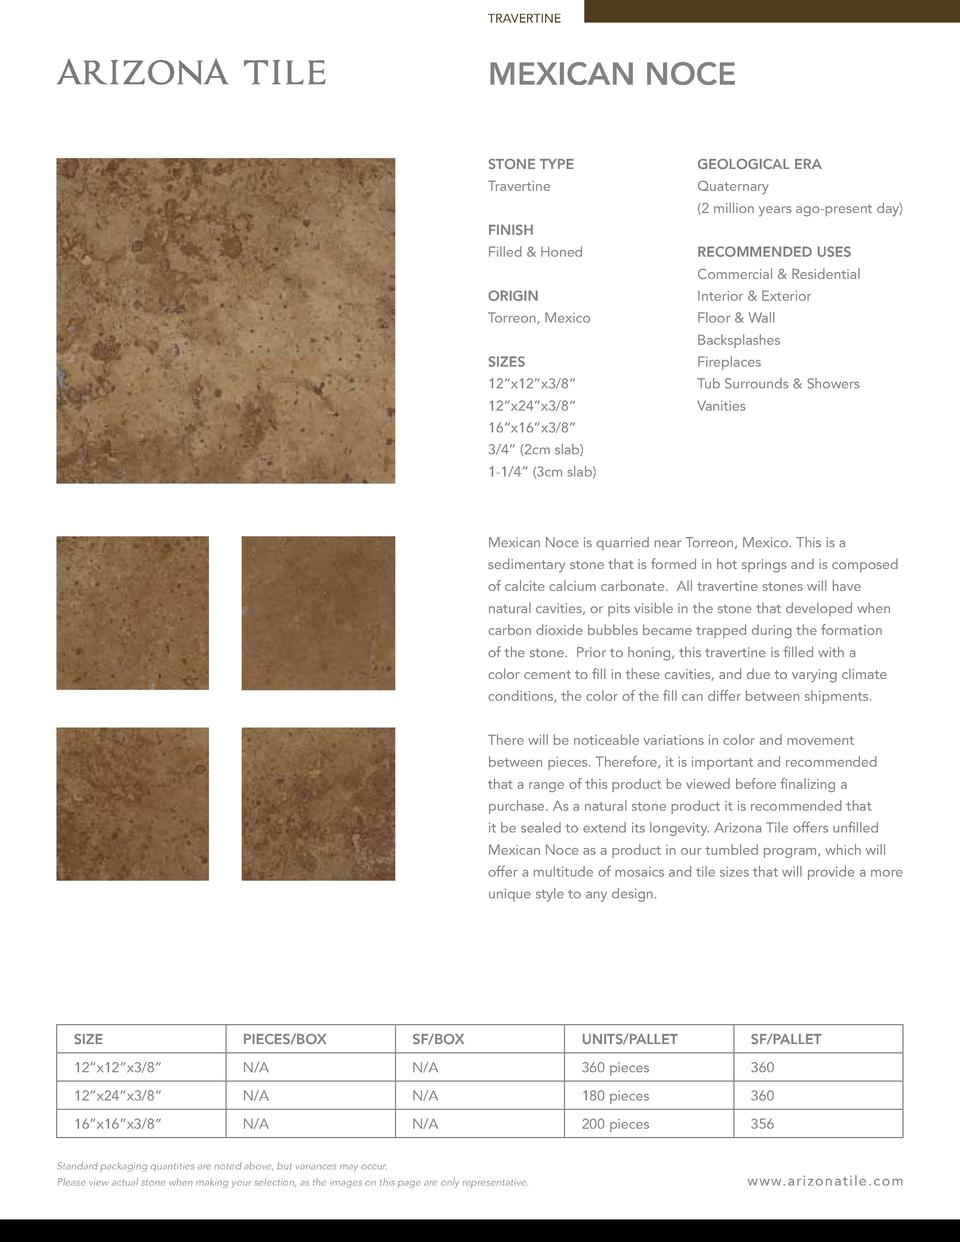 TRAVERTINE  MEXICAN NOCE STONE TYPE  GEOLOGICAL ERA  Travertine  Quaternary  2 million years ago-present day   FINISH Fill...